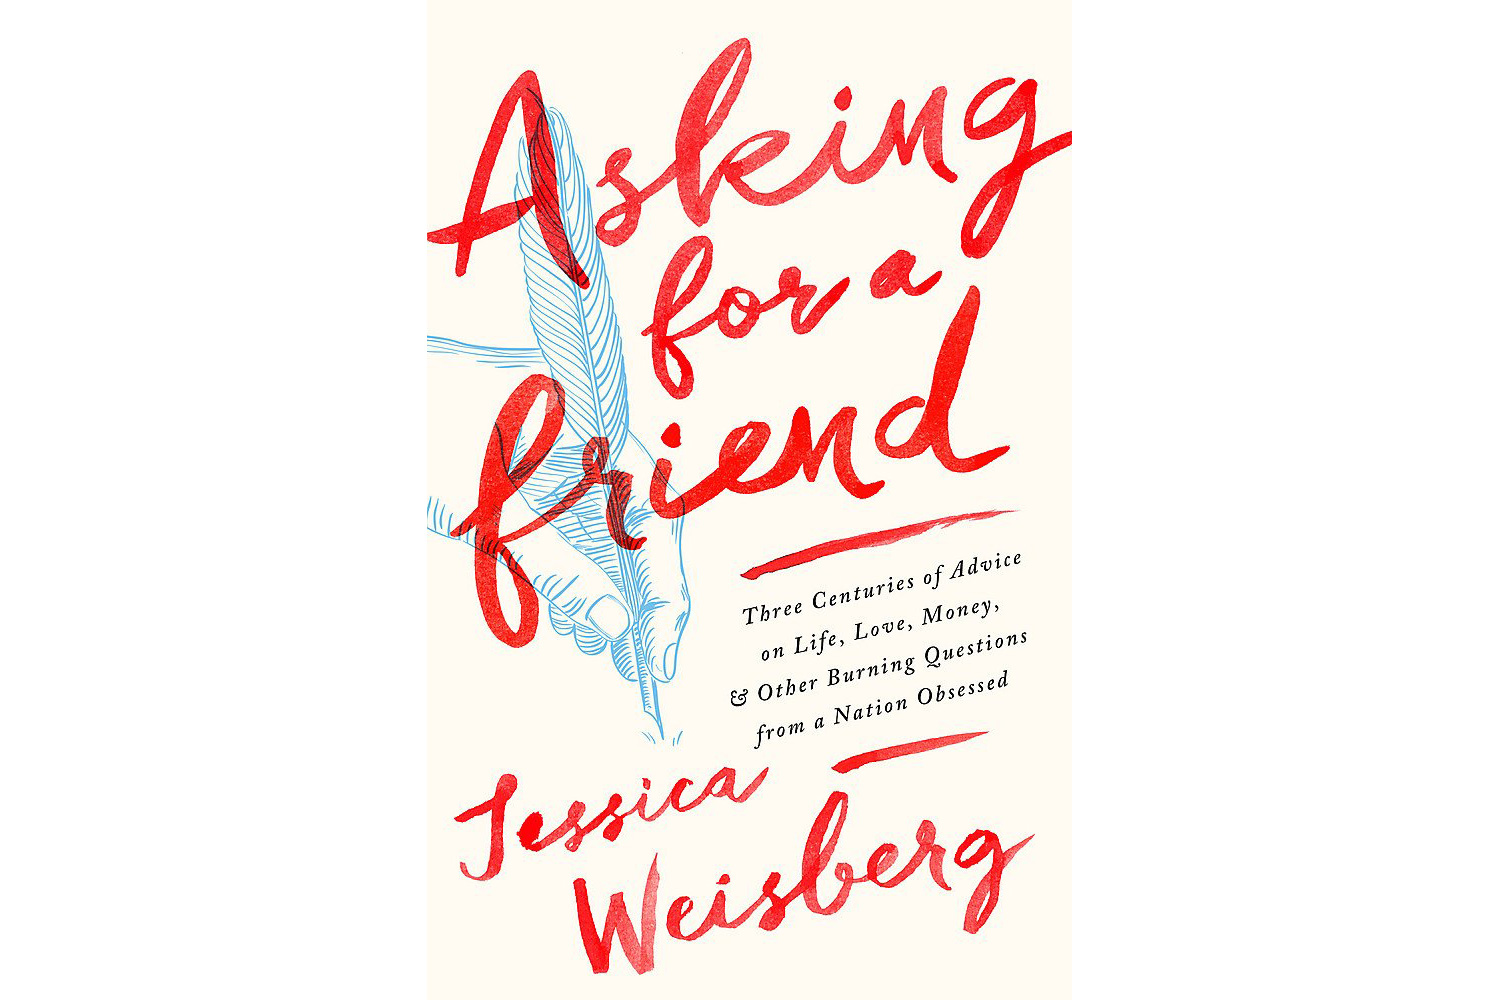 Asking for a Friend, by Jessica Weisberg